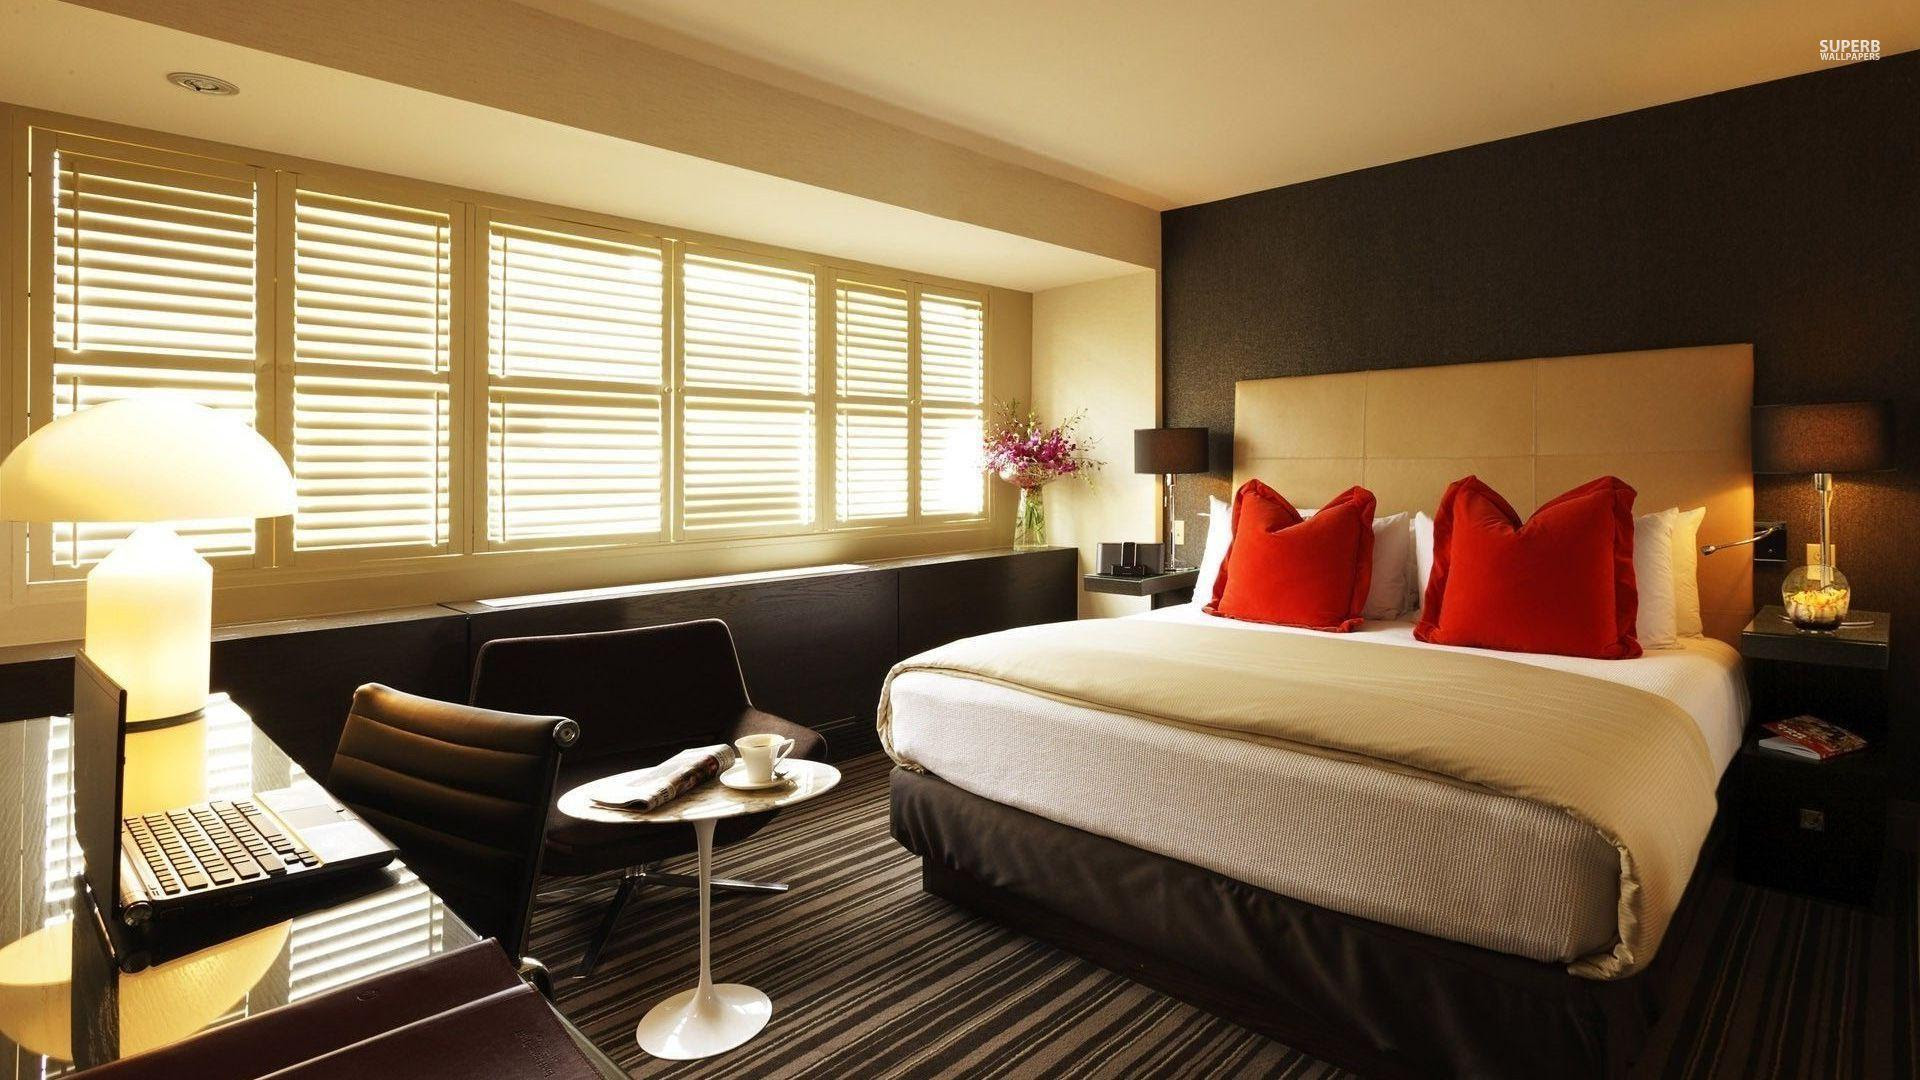 Reviews UX Hotel (Test Property) - Do Not Book